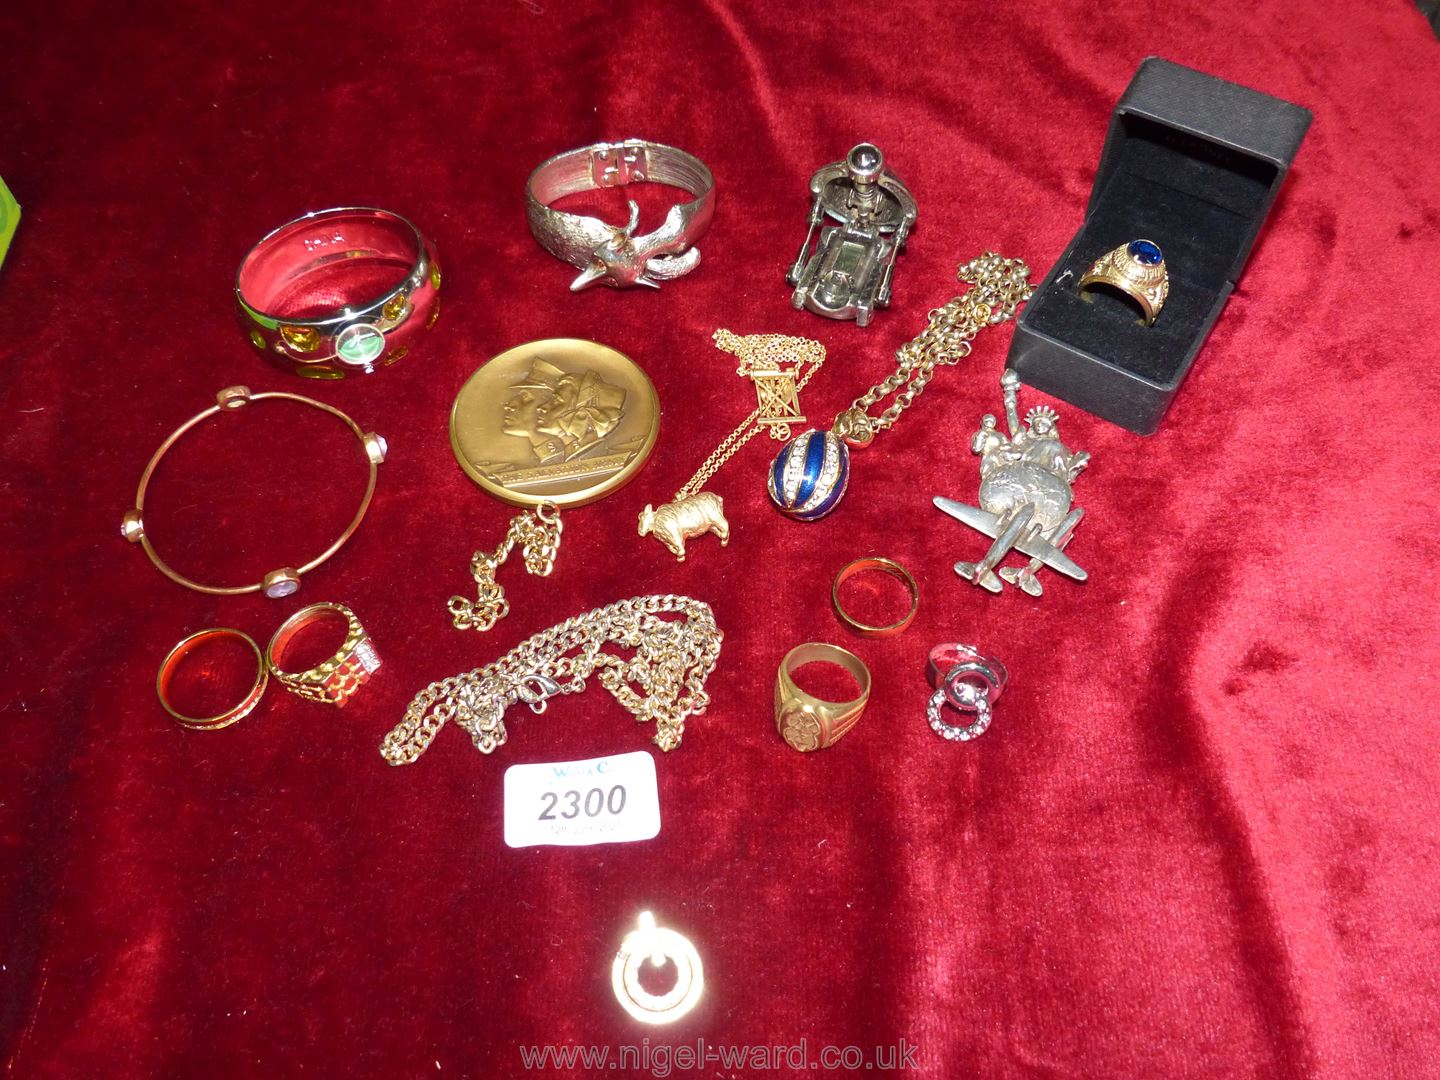 A quantity of costume jewellery including bangles, white metal brooch, large rings,